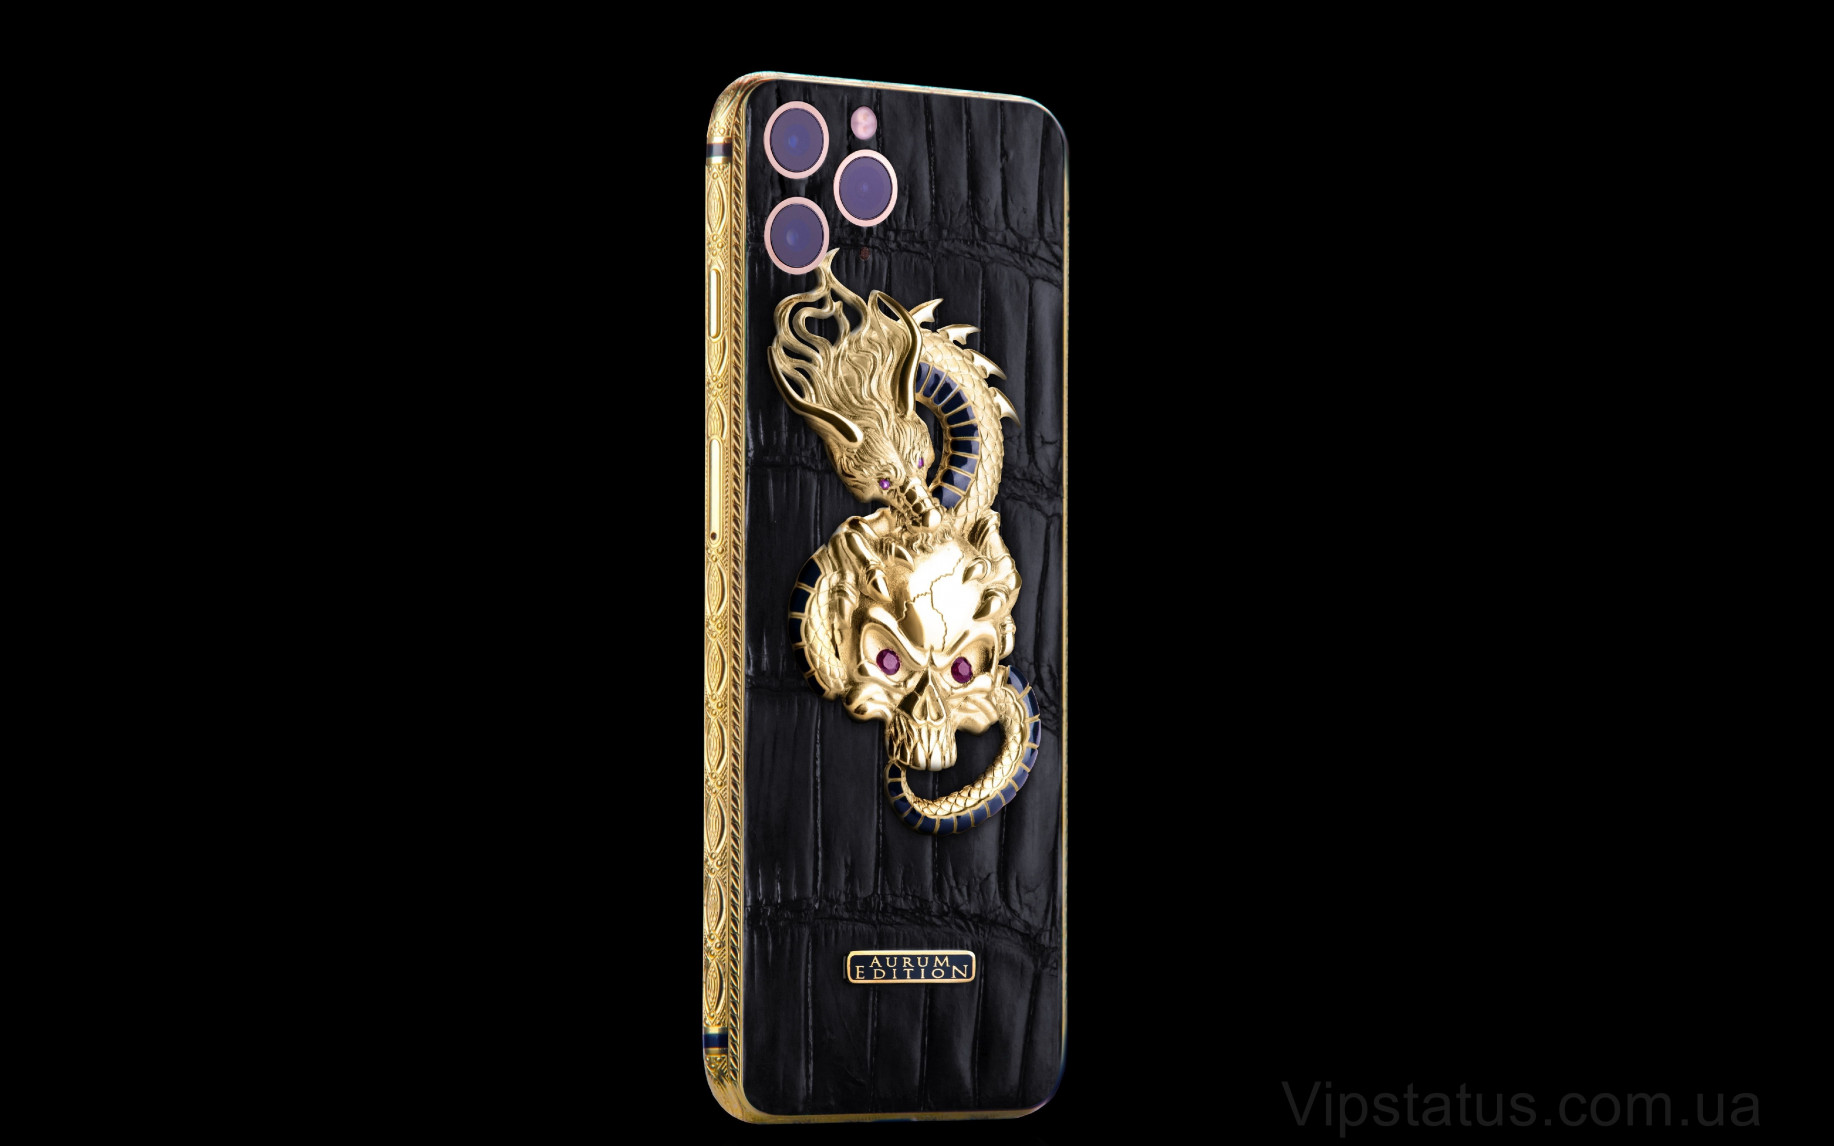 Elite Fire Skull IPHONE 11 PRO MAX 512 GB Fire Skull IPHONE 11 PRO MAX 512 GB image 1